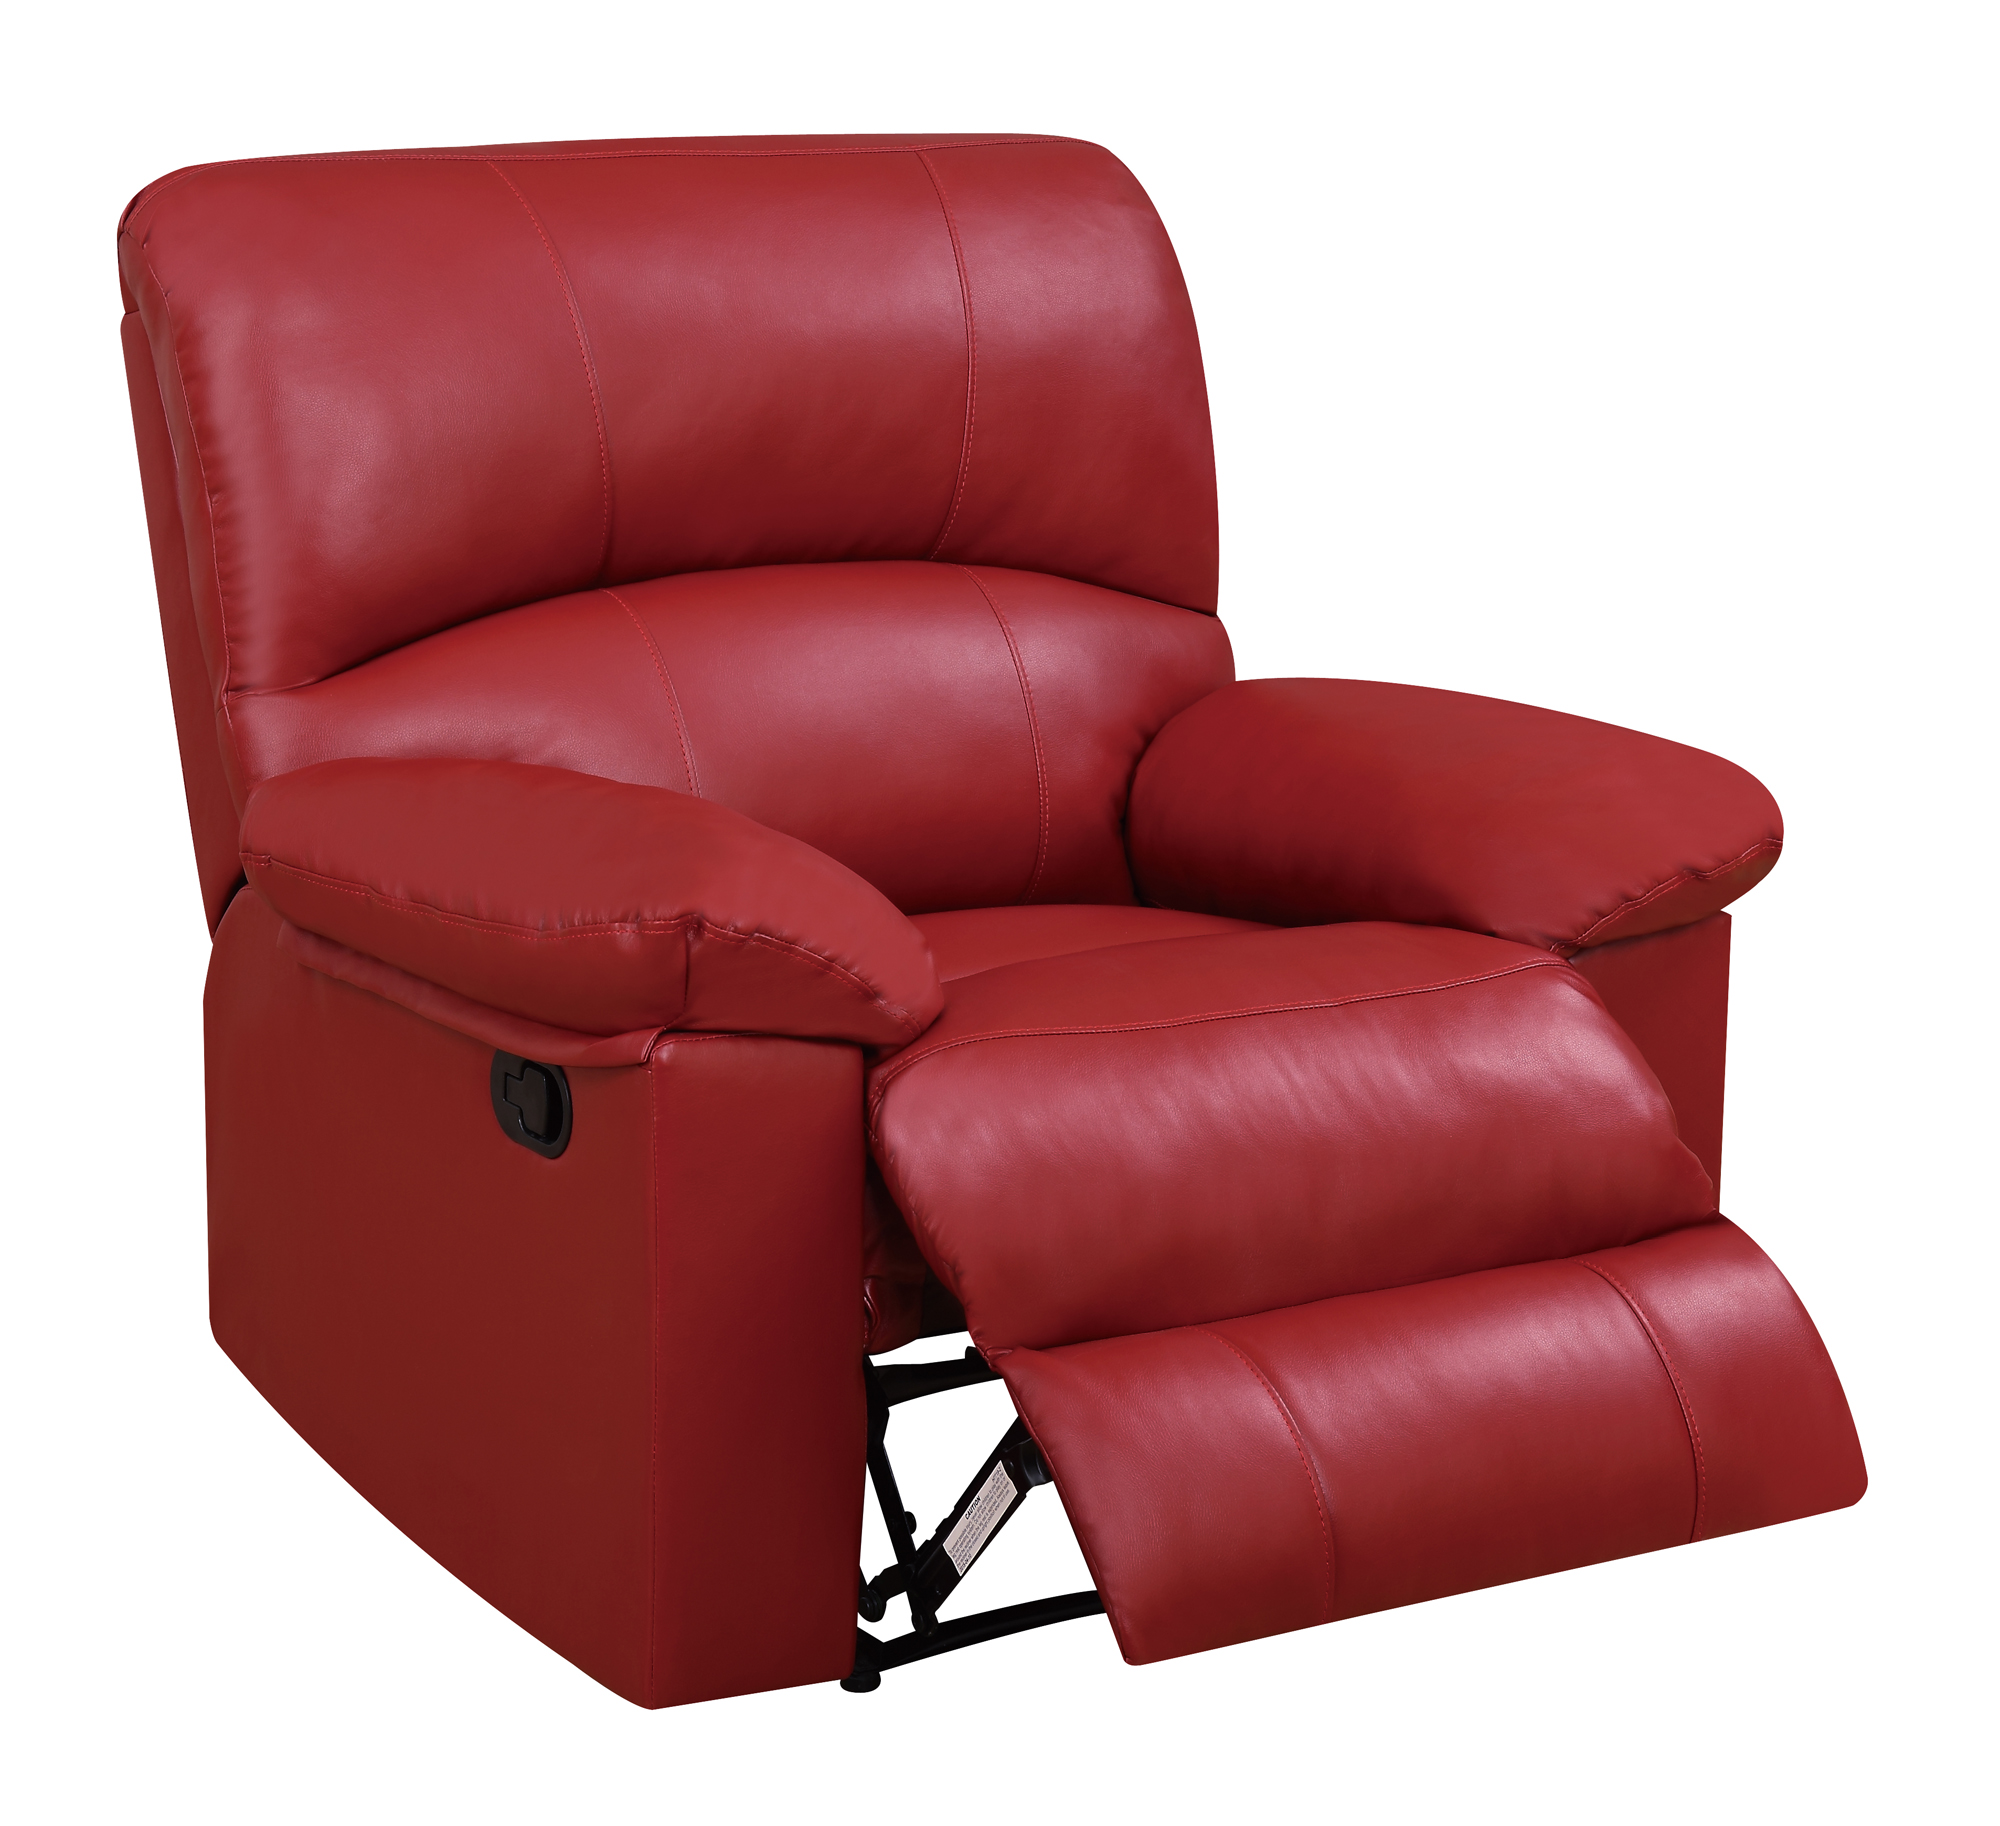 red recliner chairs kmart outdoor u99270 pu glider reclining chair by global furniture